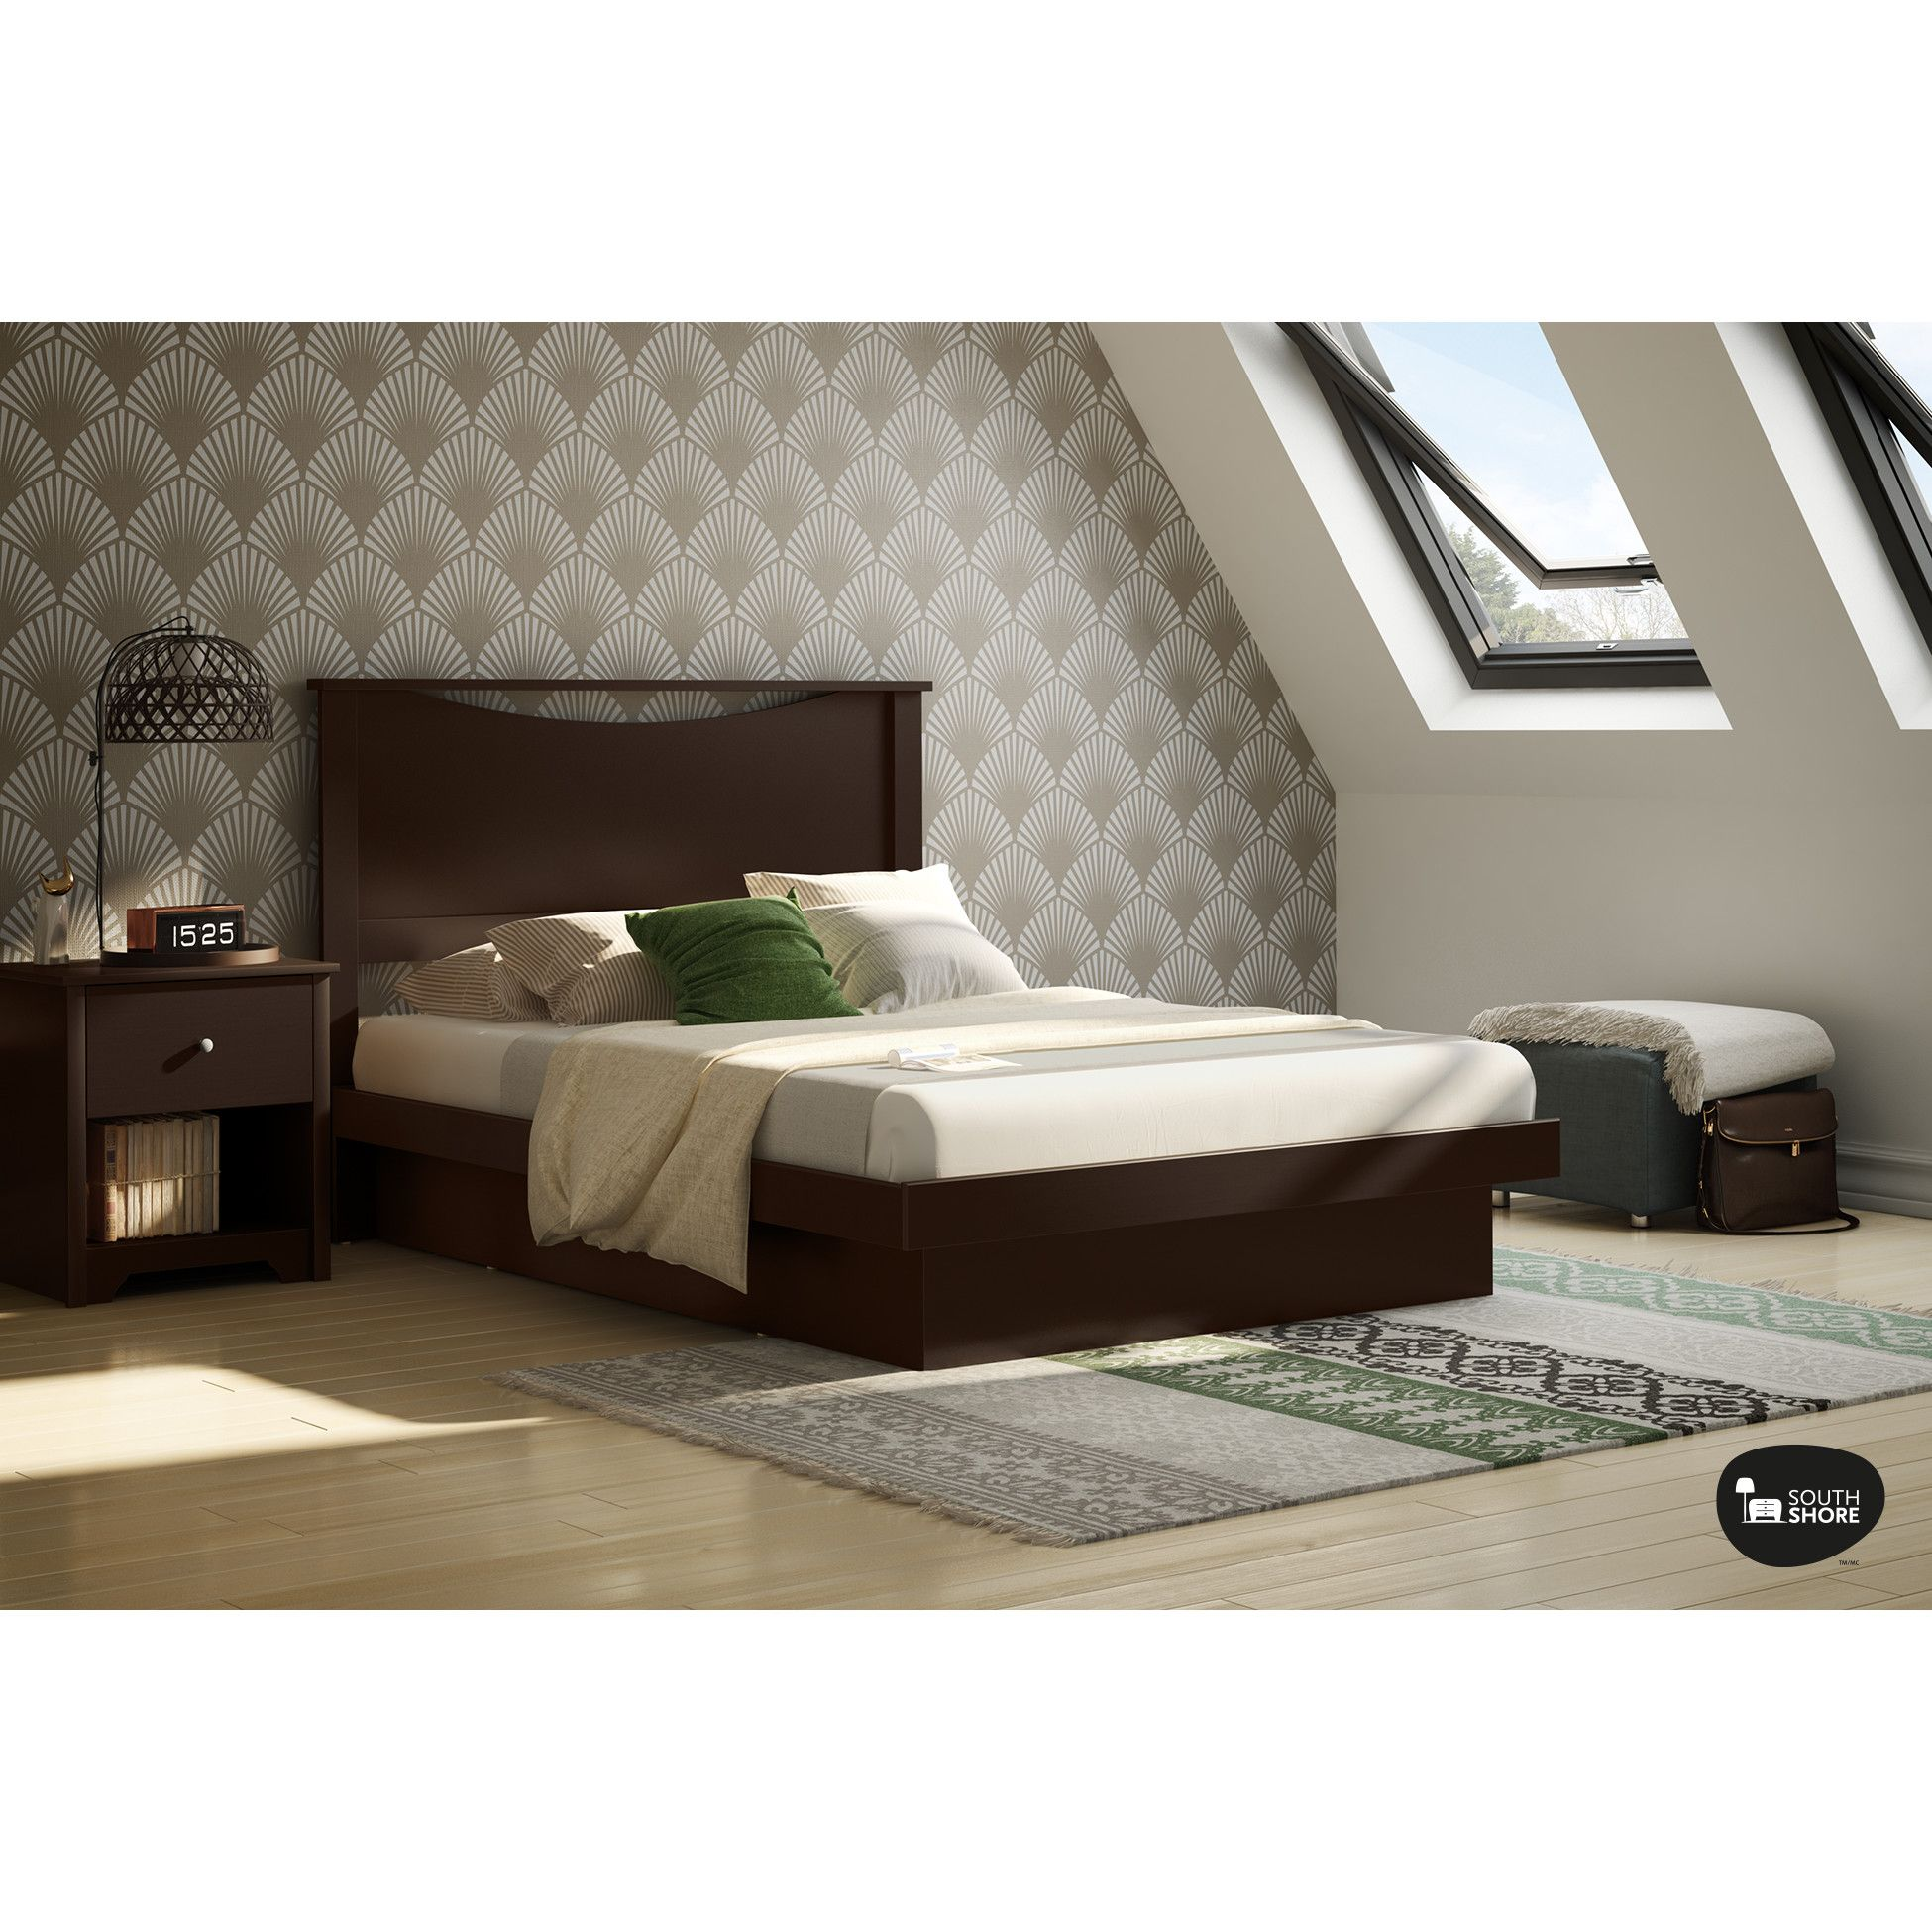 Types Of Beds Platform Bed With Molding